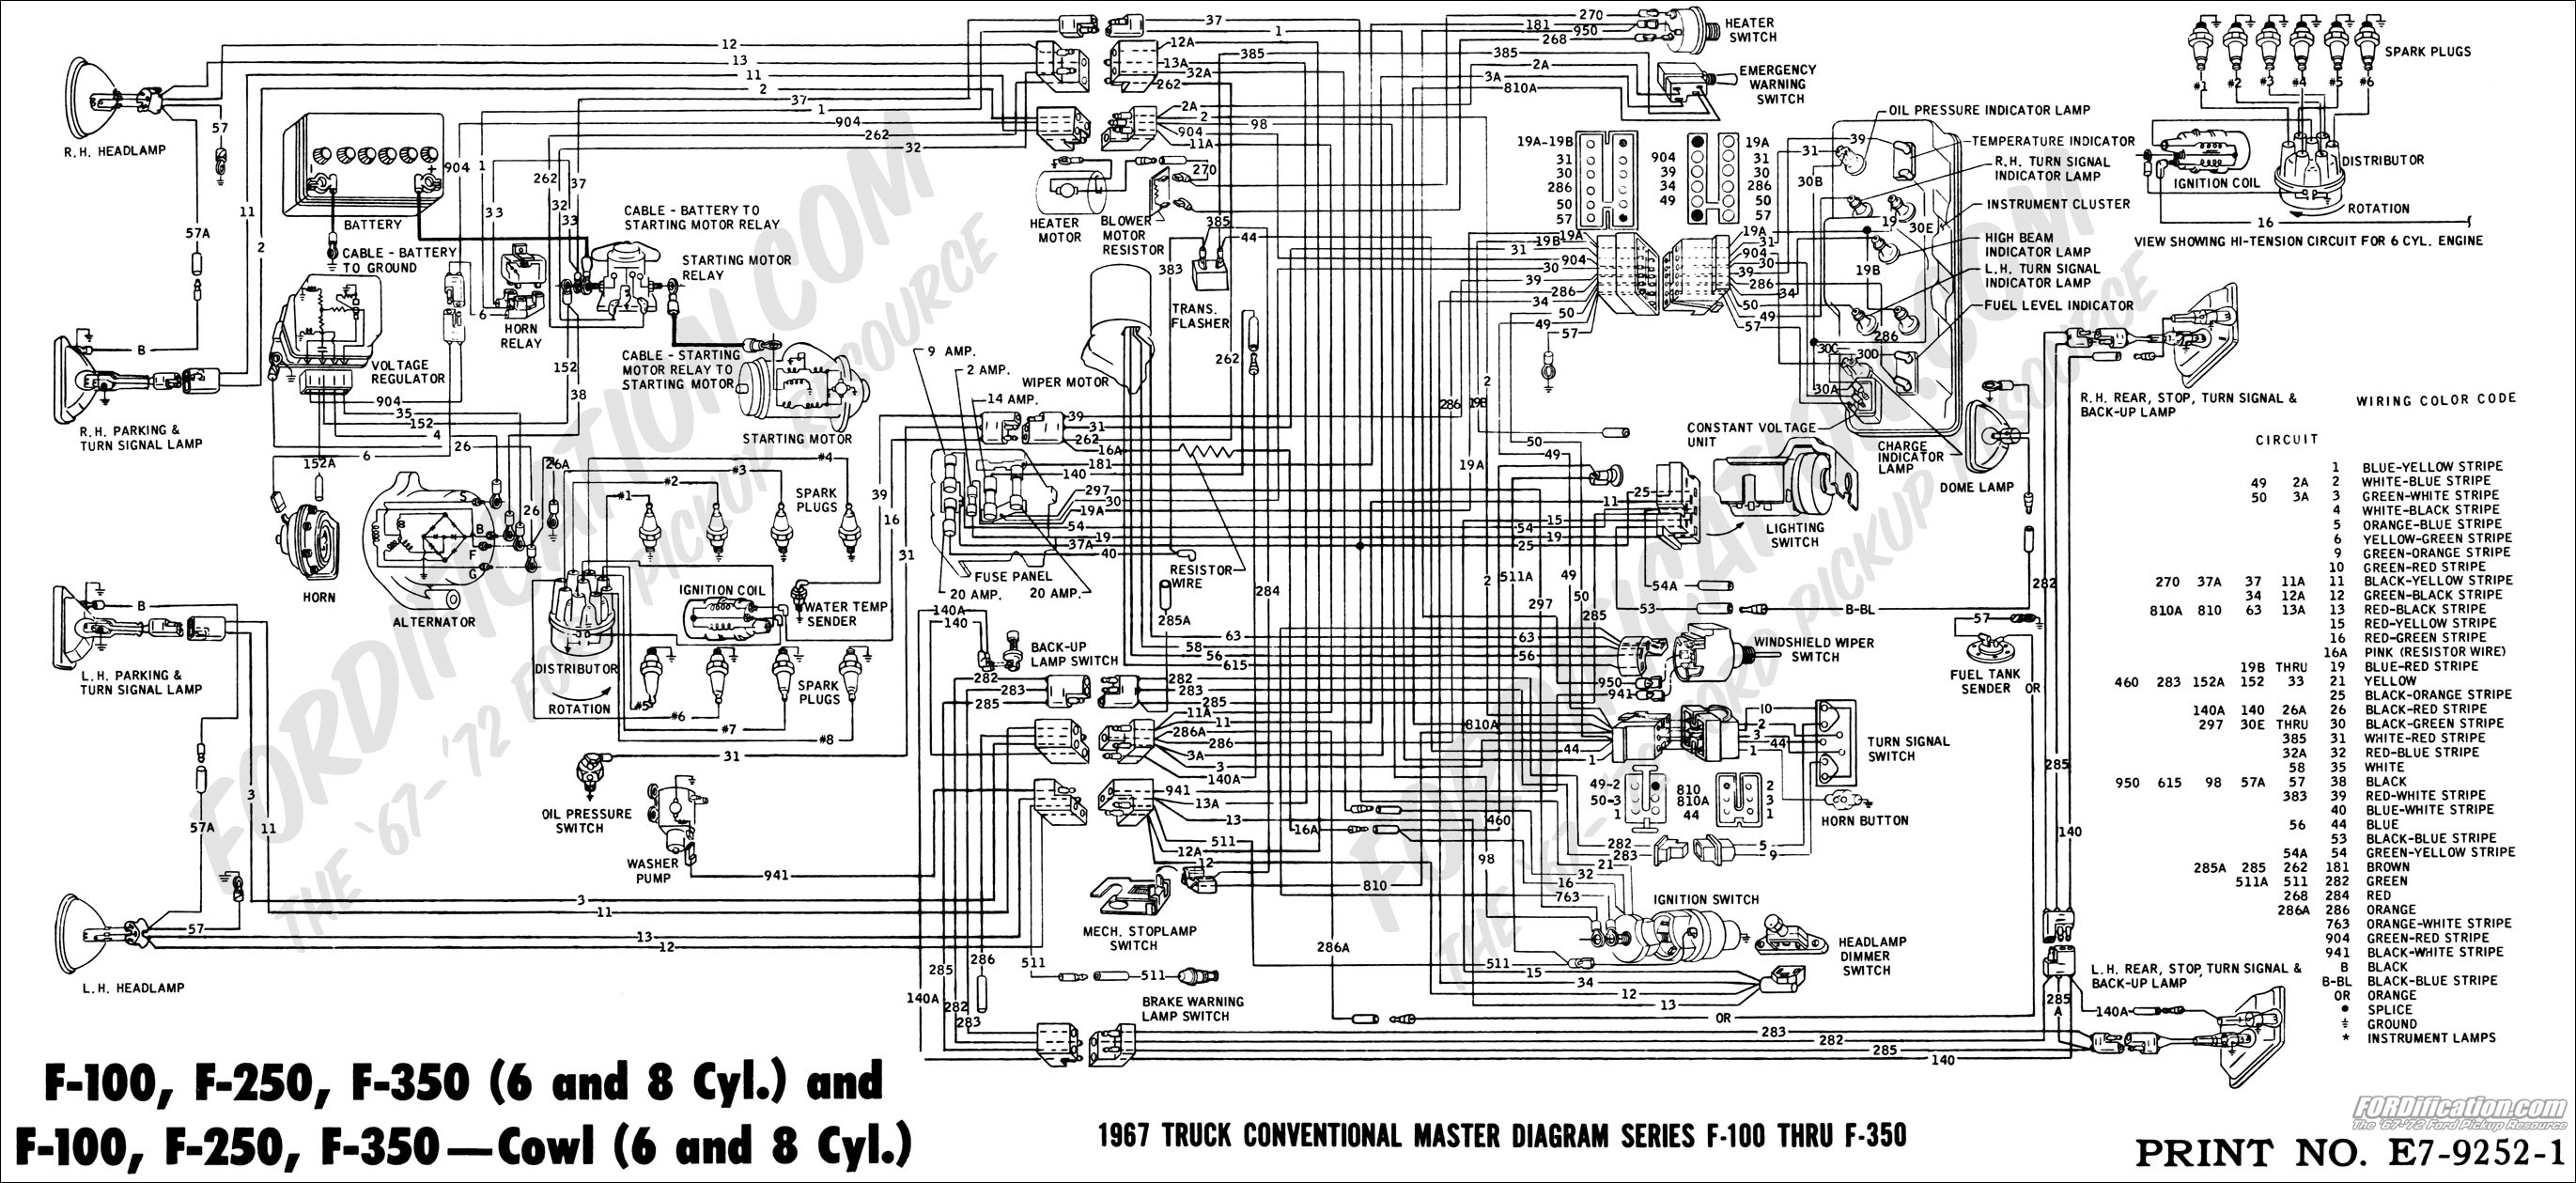 97 ford ranger engine diagram wiring diagram 93 ford f700 wiring rh detoxicrecenze com